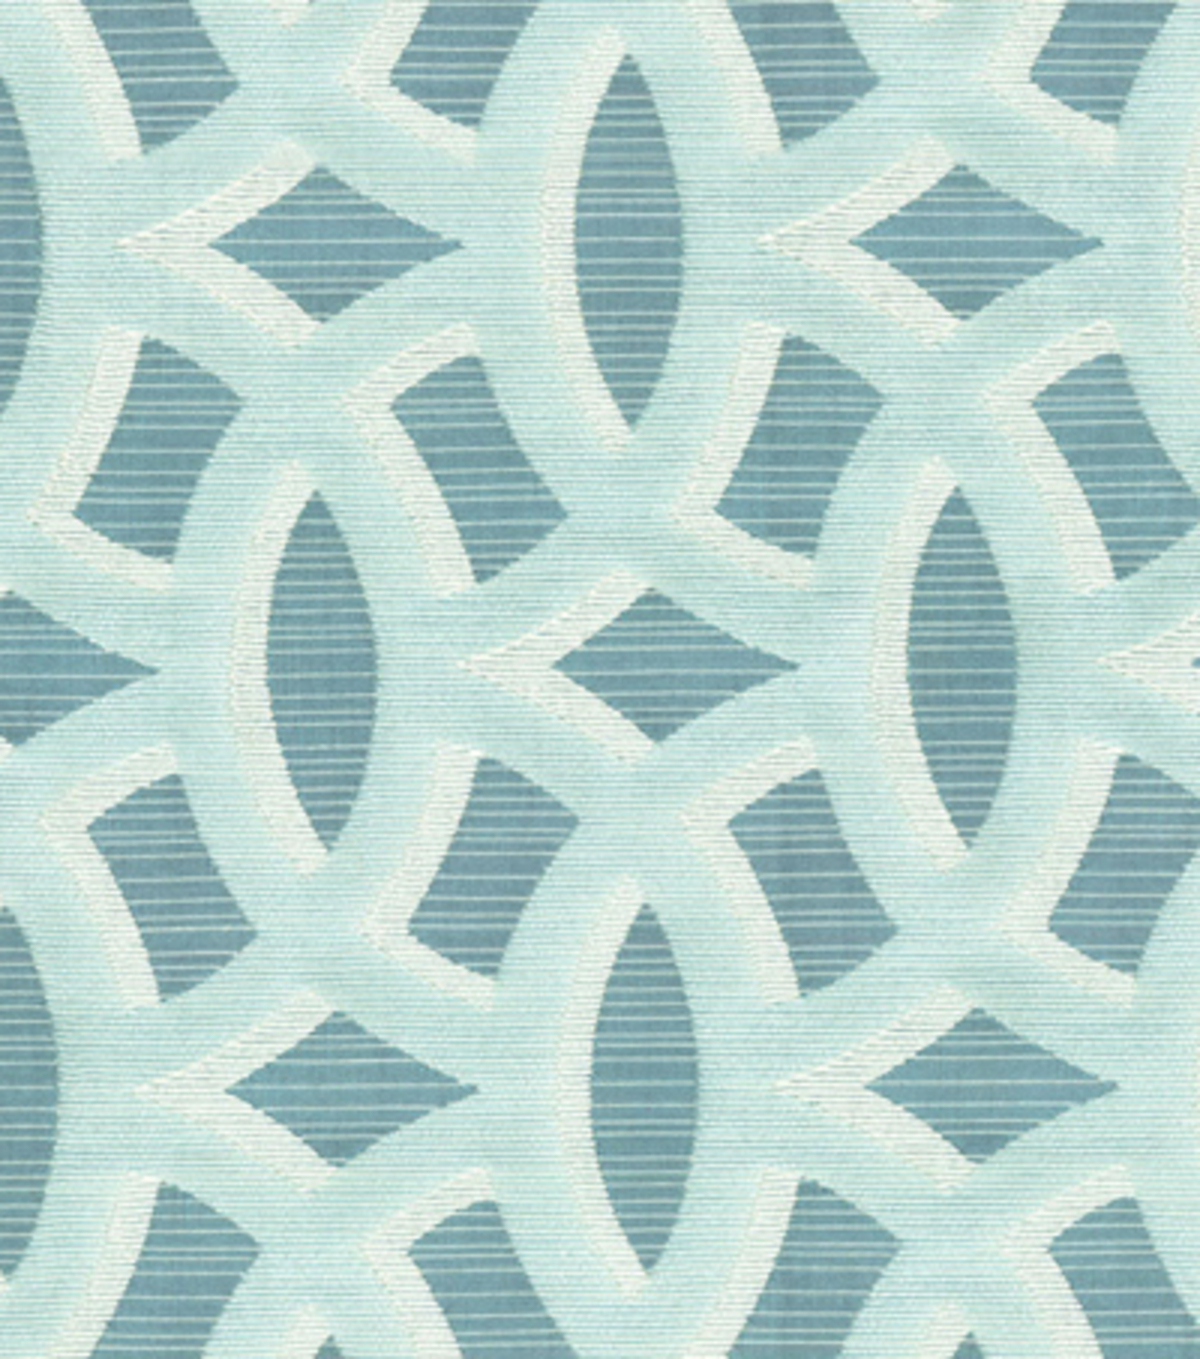 Home Decor 8\u0022x8\u0022 Fabric Swatch-HGTV HOME Back lit Teal